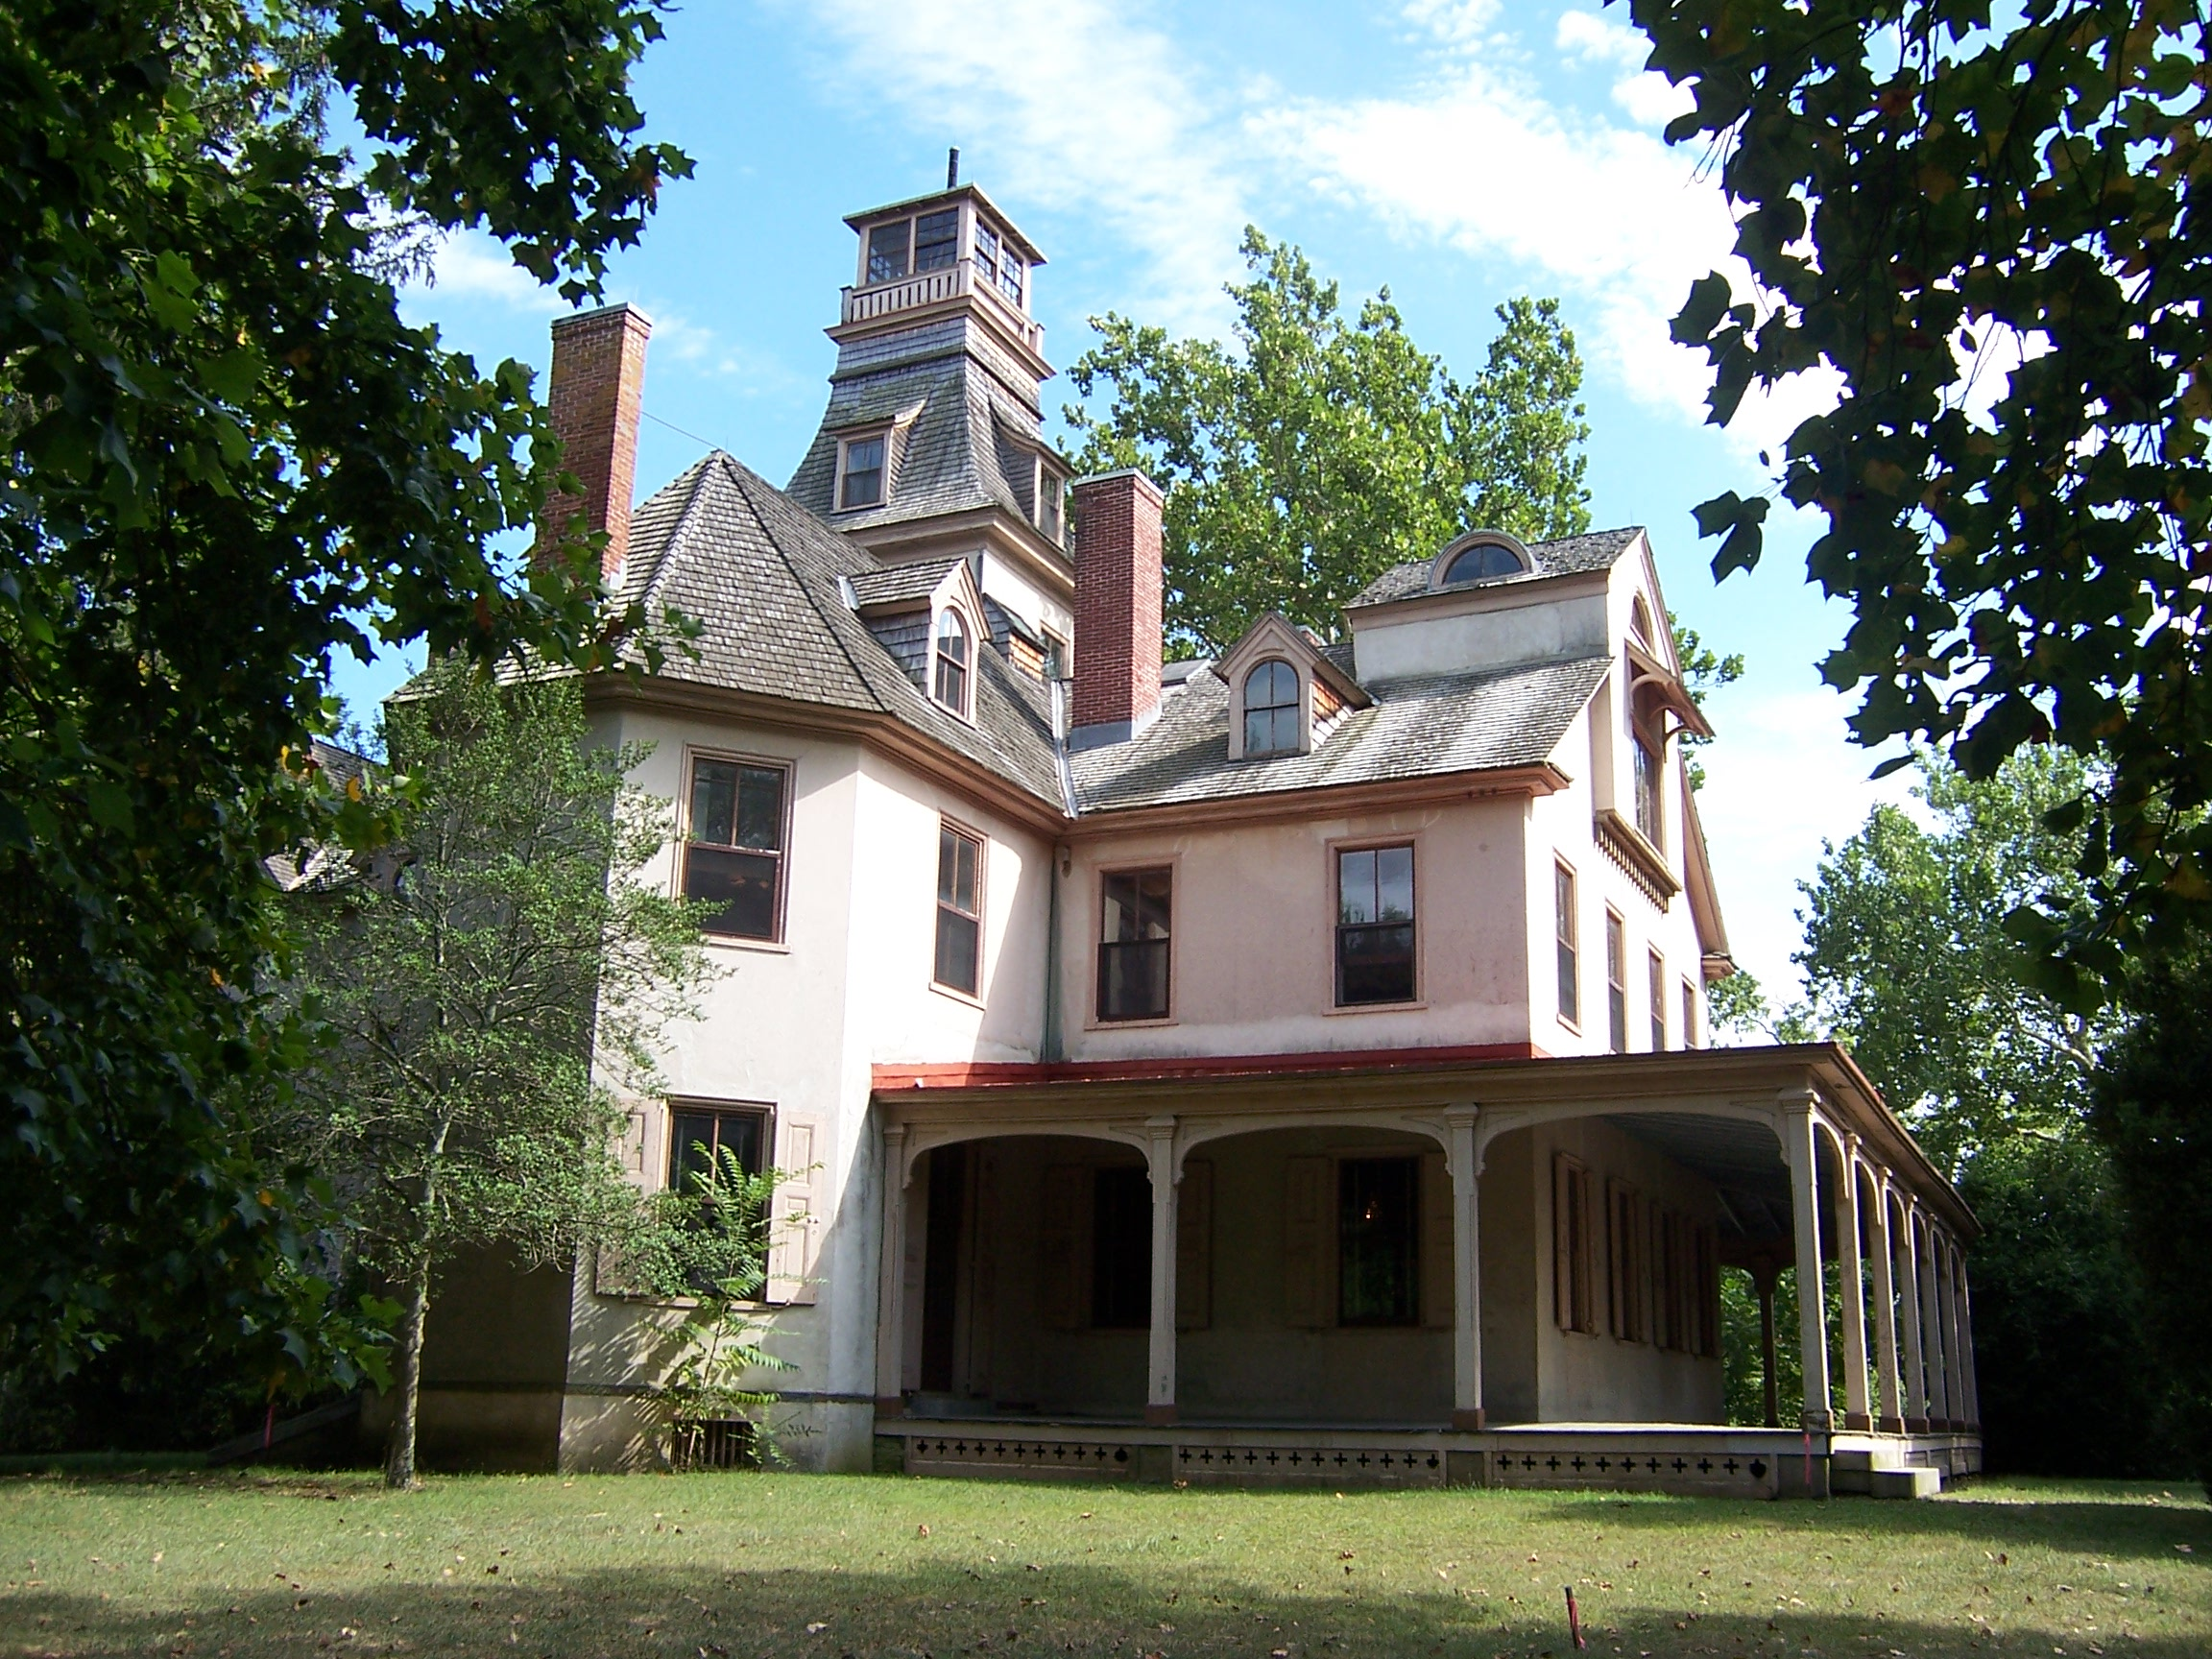 The mansion at Batsto State Park